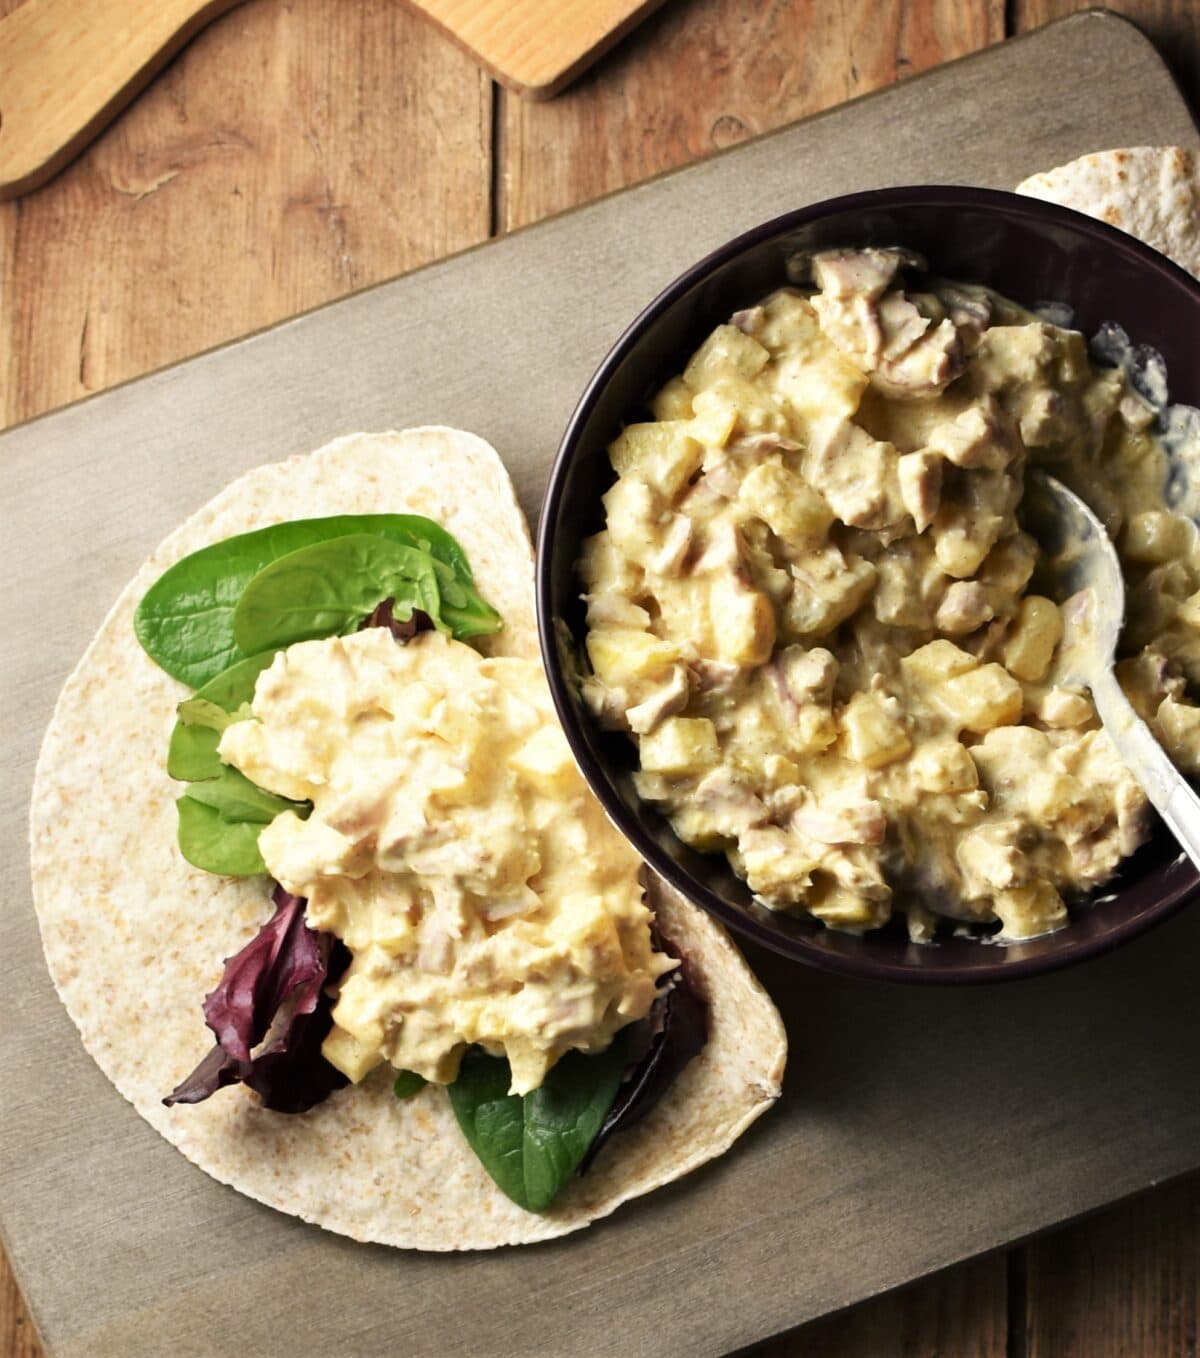 Chicken pineapple salad on top of wrap and in purple bowl with spoon.